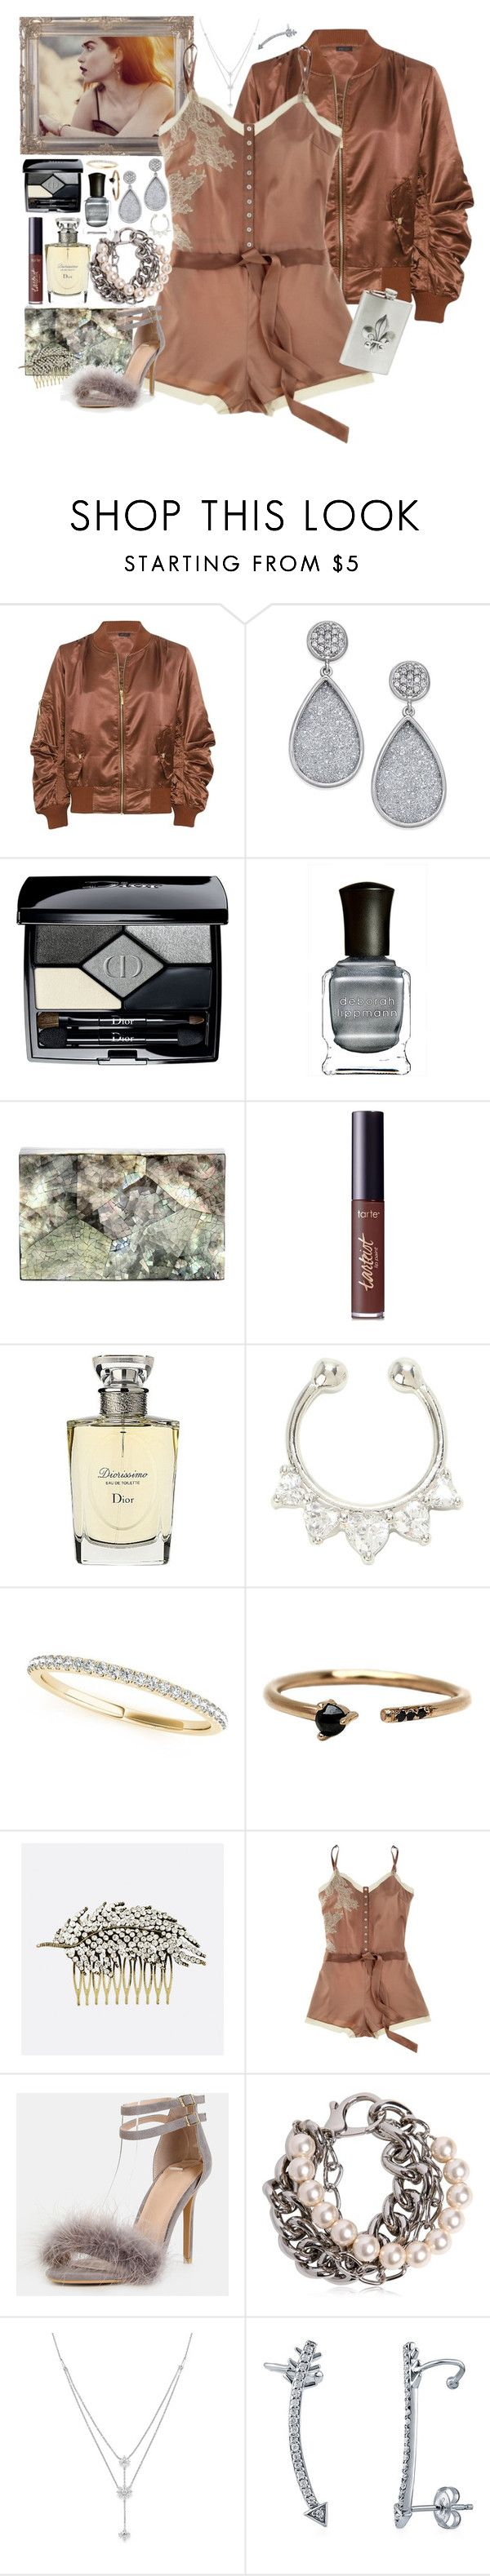 """Do What U Want - Lady Gaga"" by leo8august ❤ liked on Polyvore featuring Christian Dior, Deborah Lippmann, Nathalie Trad, tarte, Allurez, LUMO, Avenue, Elle Macpherson Intimates, Moschino and Bloomingdale's"